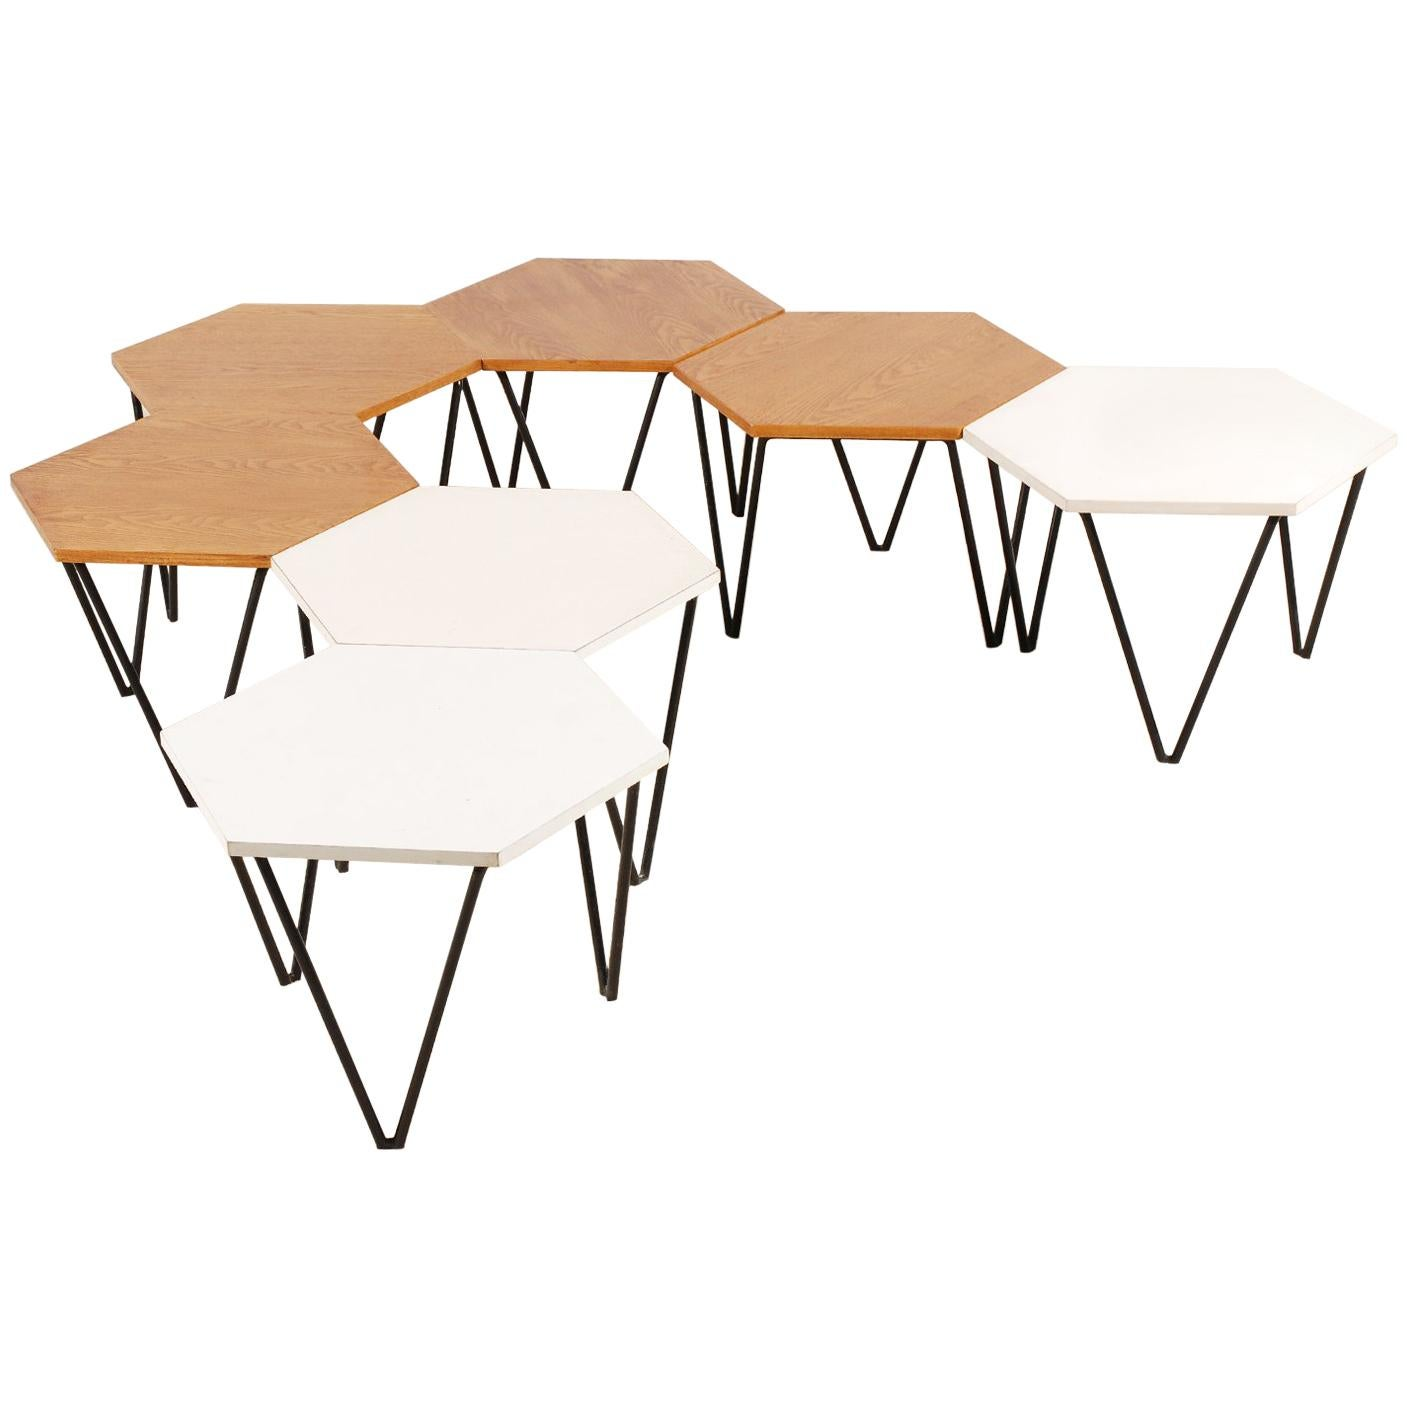 Beau Gio Ponti, Set Of 7 Modular Coffee Tables For I.S.A., Italy, Circa 1950